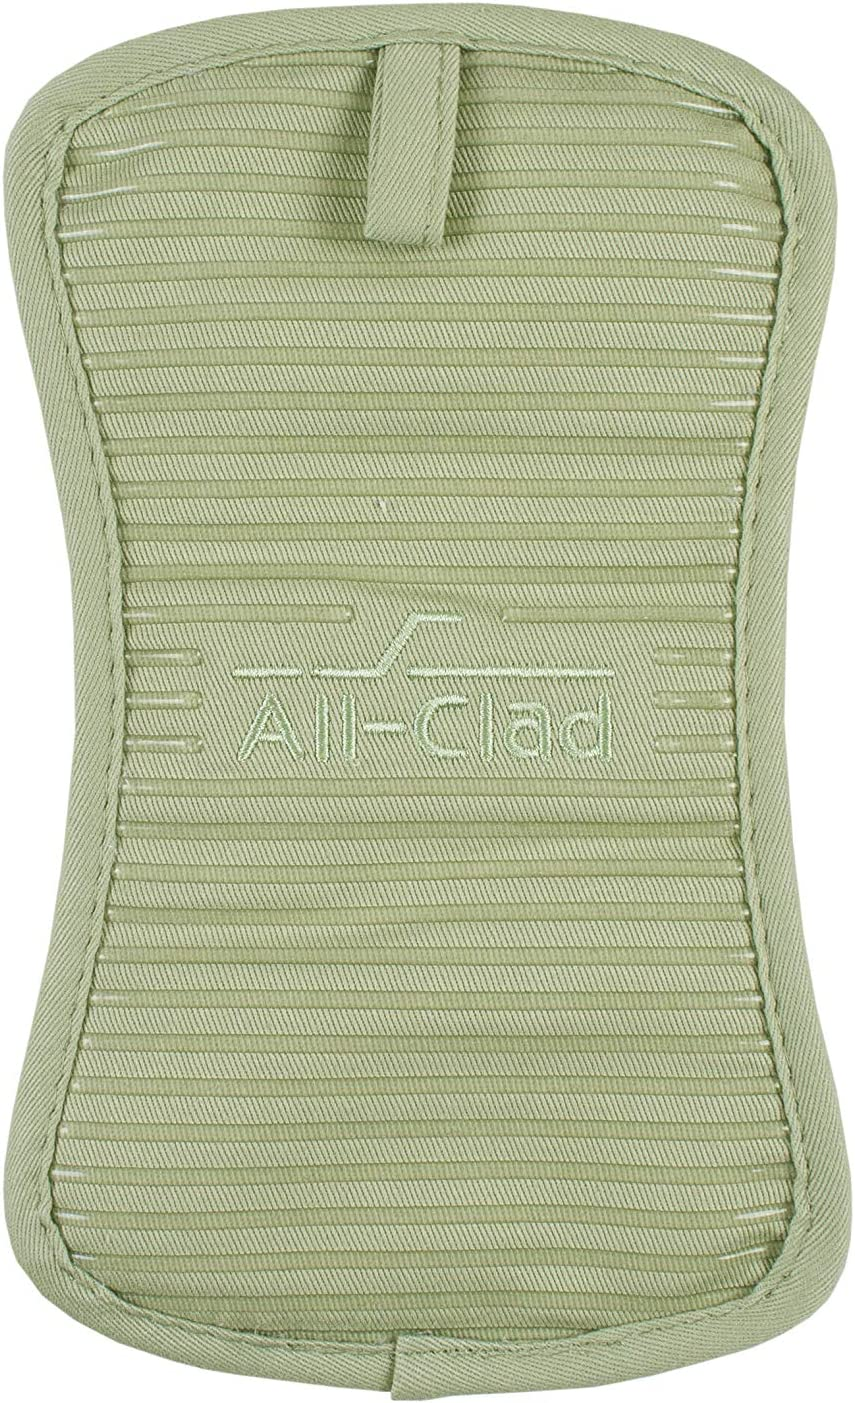 All-Clad Textiles Silicone Pot Holder, 1 Pack, Fennel